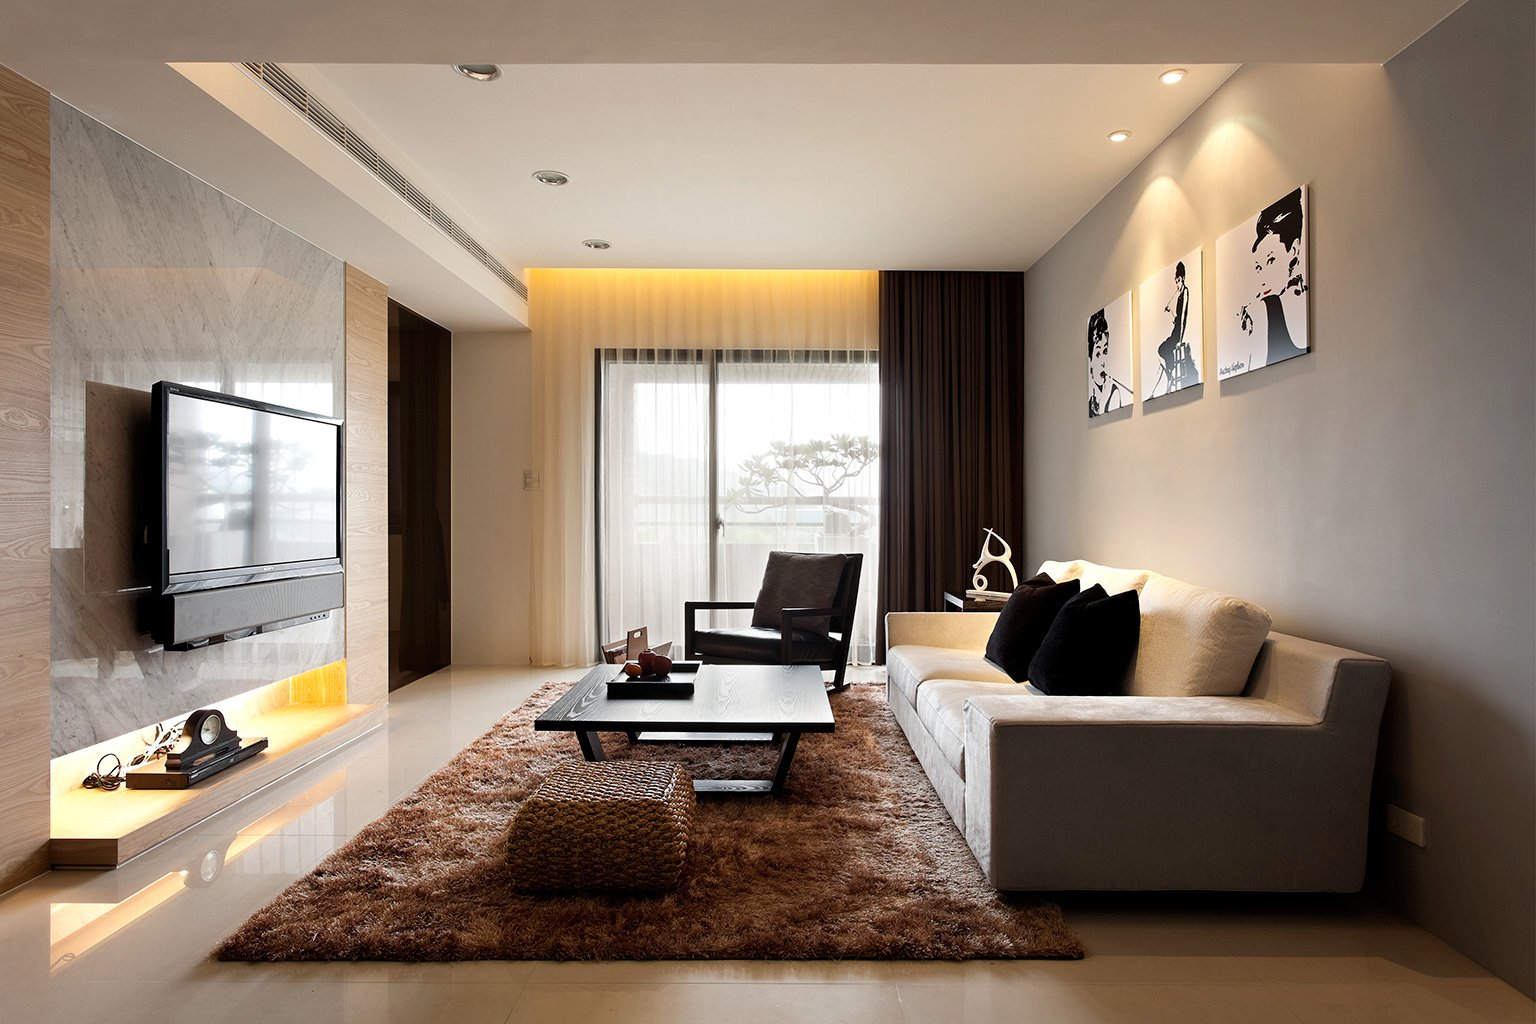 living room decoration. Complete Minimalist Living Room Decor with Dark Coffee Table and Fluffy  Sofa on Brown Carpet Rug Decoration Ideas MidCityEast